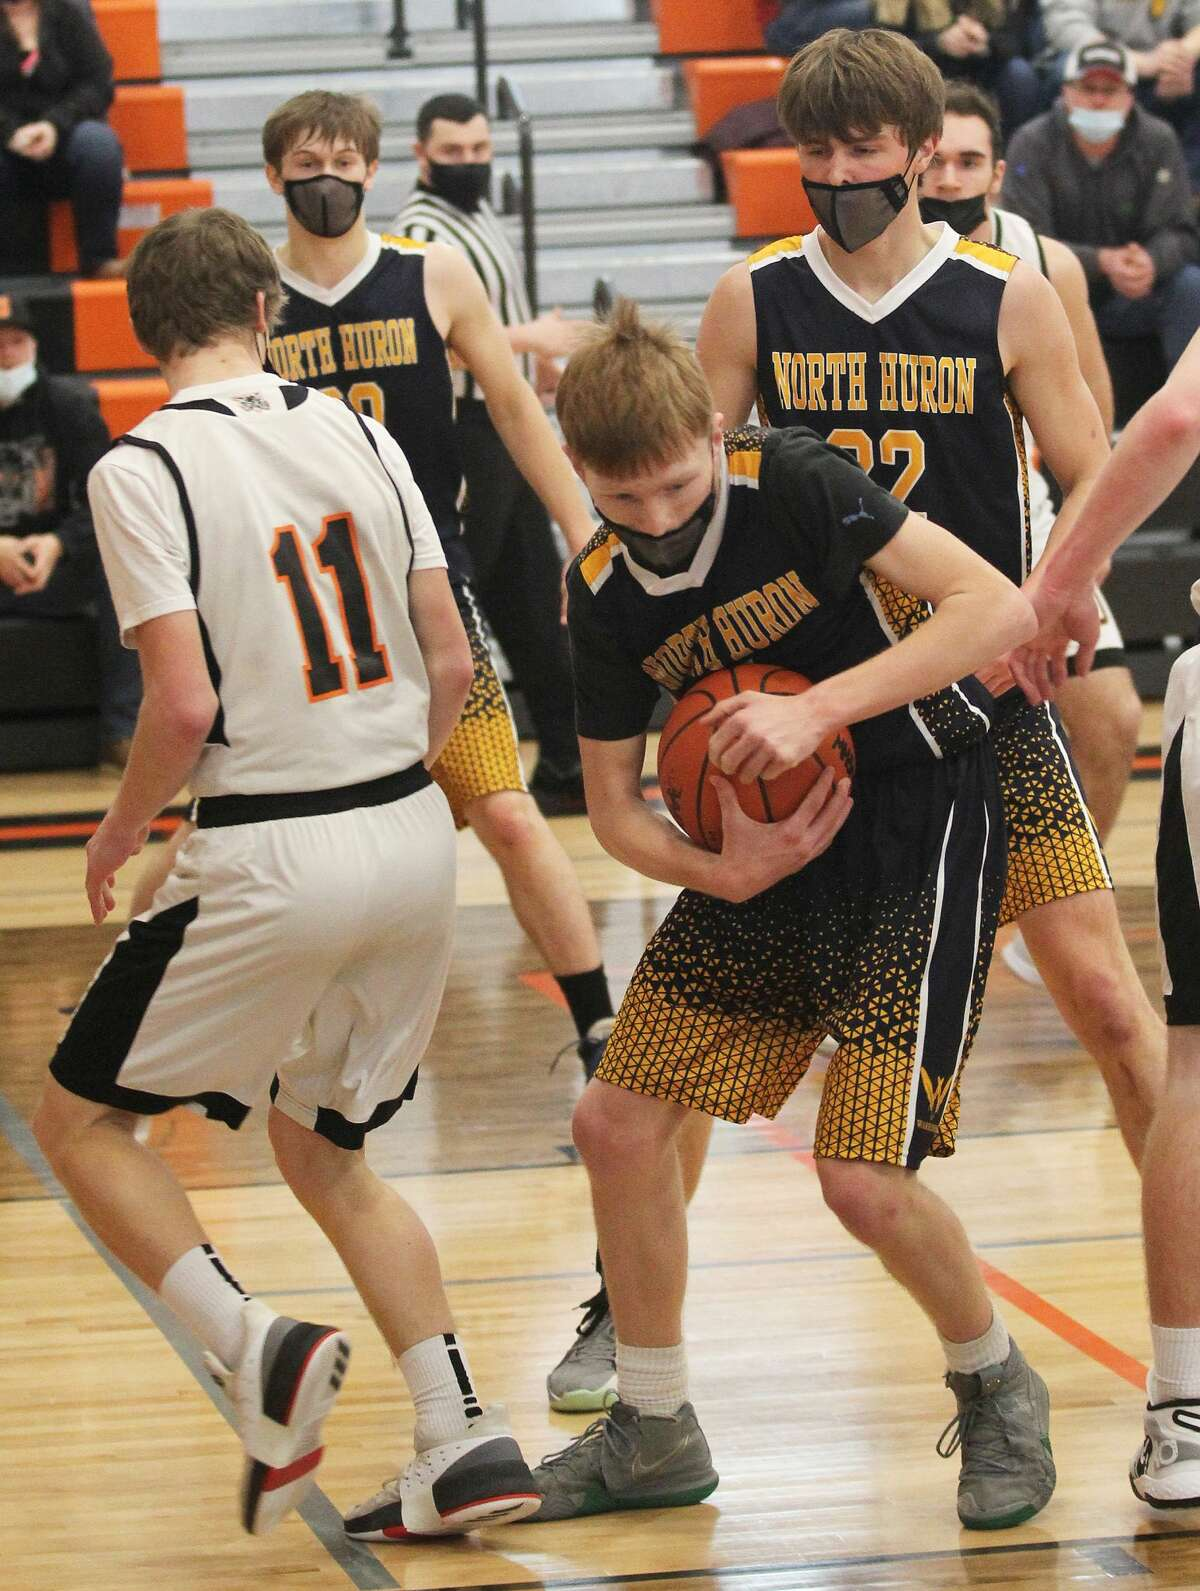 The Ubly boys basketball team captured it first district championship since 2004 with a 50-27 victory over the North Huron Warriors at home on Saturday afternoon. The Bearcats (12-2) move on to the regional semifinals at Midland High School on Tuesday, where they will Saginaw Nouvel. The game will tip off at 5:30 p.m.